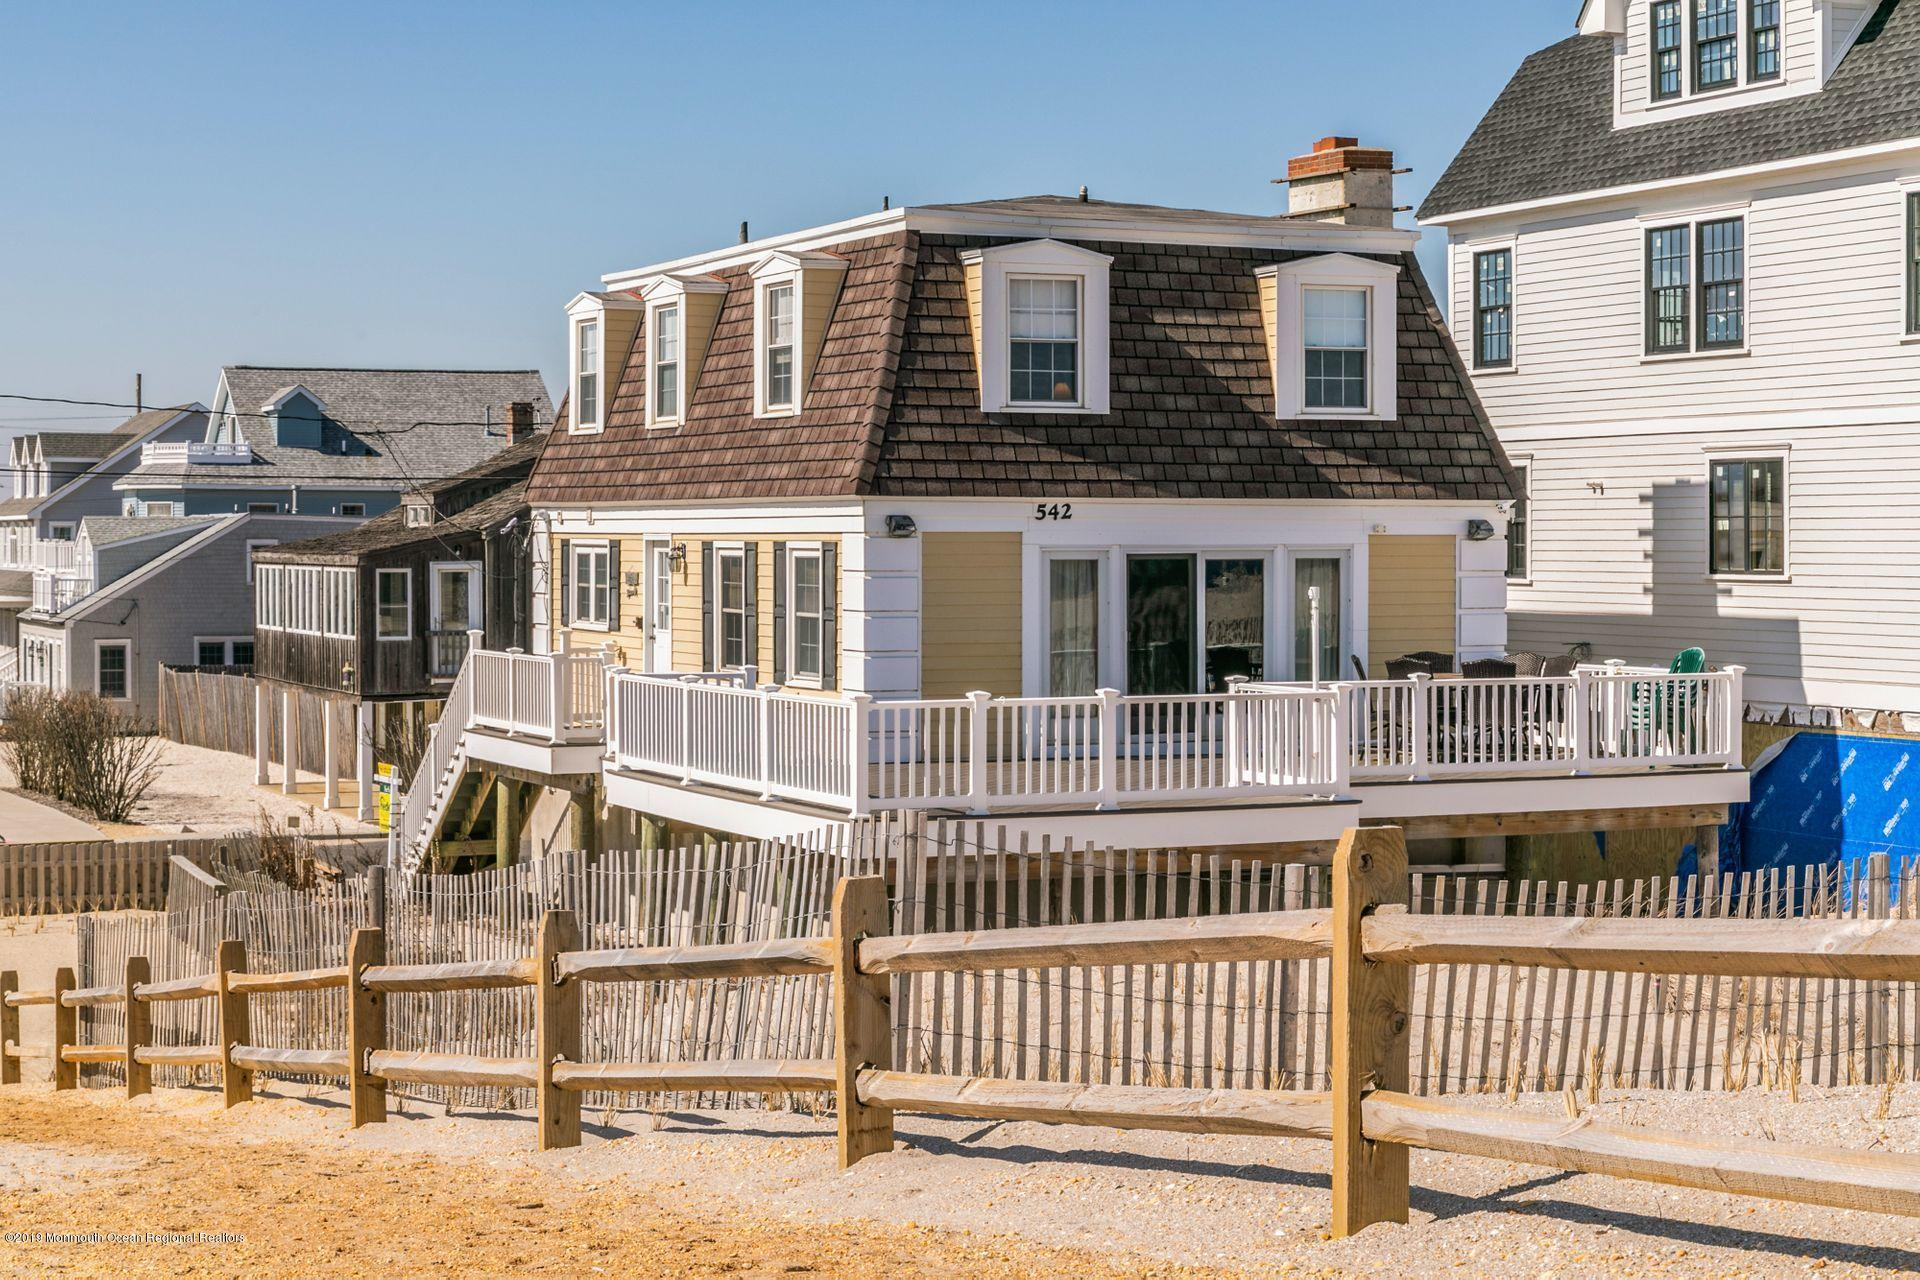 Photo of 542 Ocean Terrace, Normandy Beach, NJ 08739